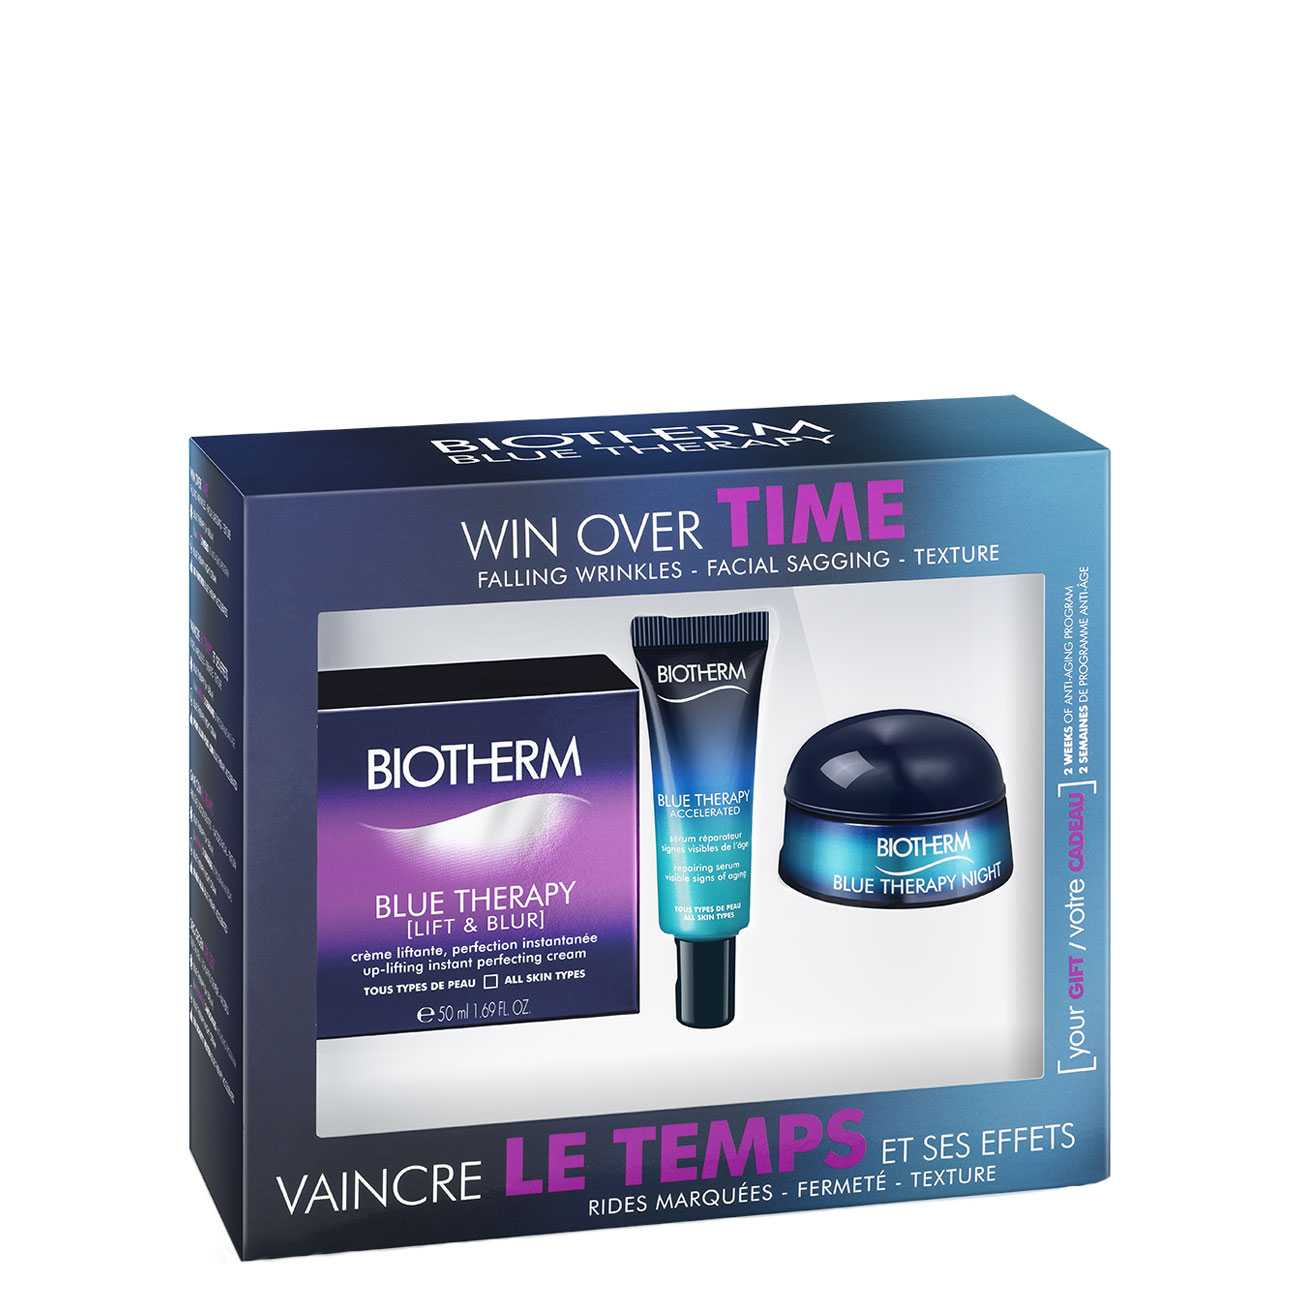 BLUE THERAPY LIFT AND BLUR SET 75 ML